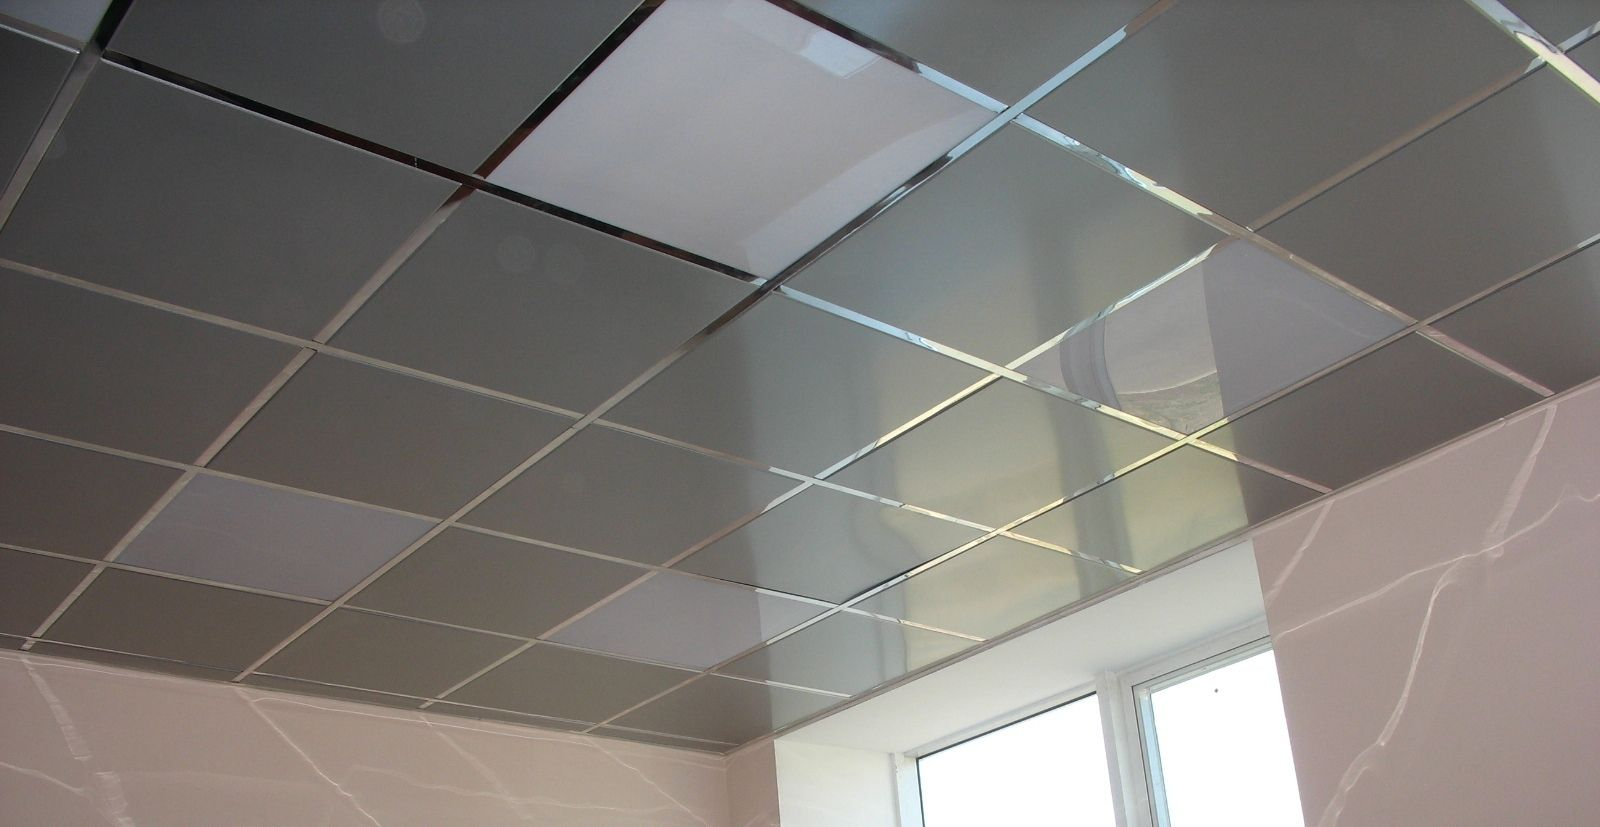 Typical office styled cassette ceiling with aluminum plates